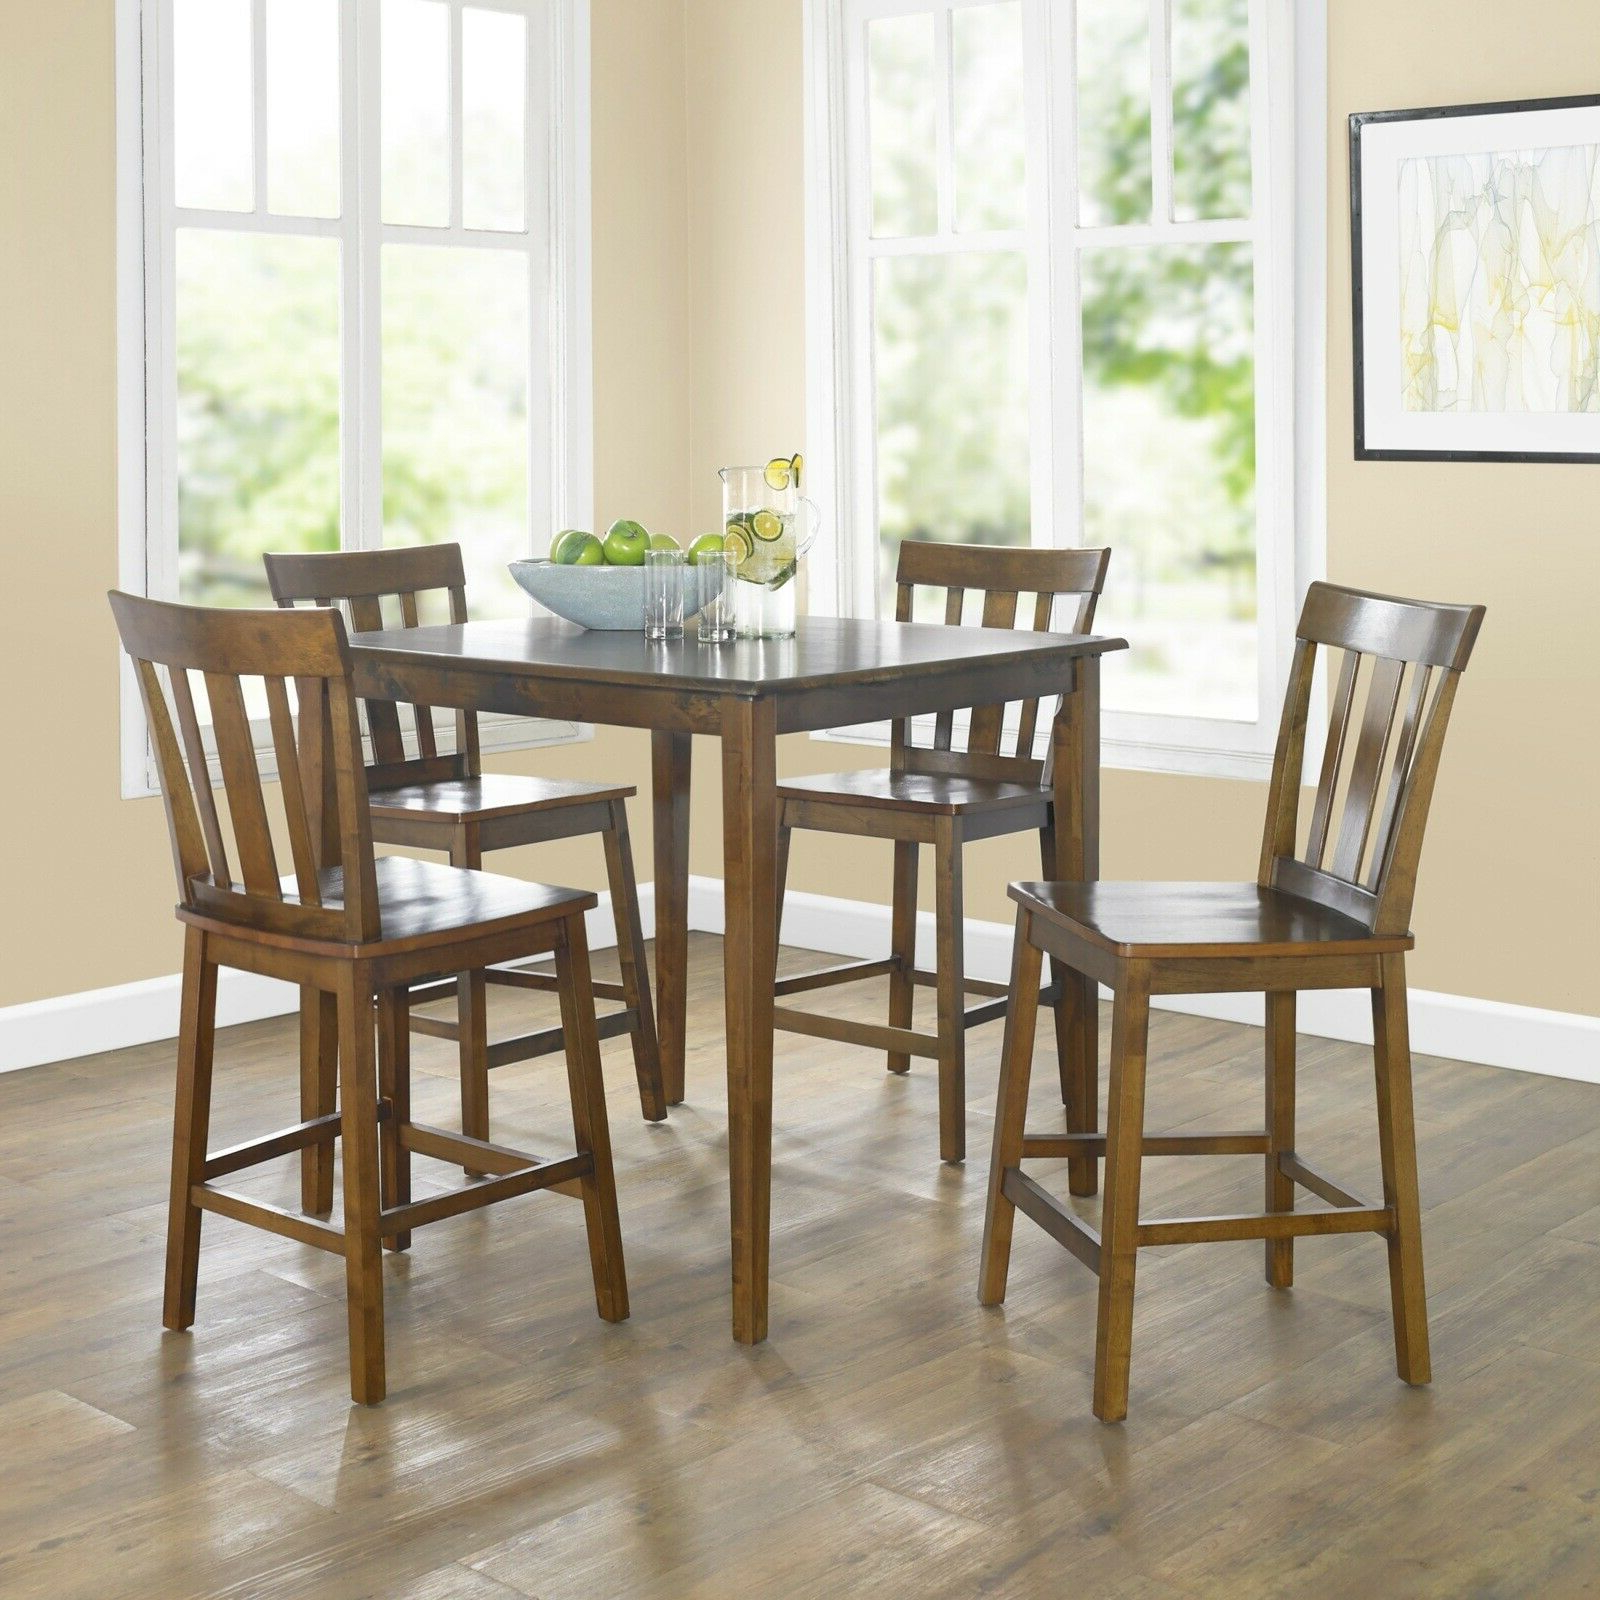 Well Liked 5 Piece Breakfast Nook Dining Sets In Details About Table And Chairs Dining Set Counter Height Sets 5 Piece Kitchen Pub Breakfast (View 10 of 20)